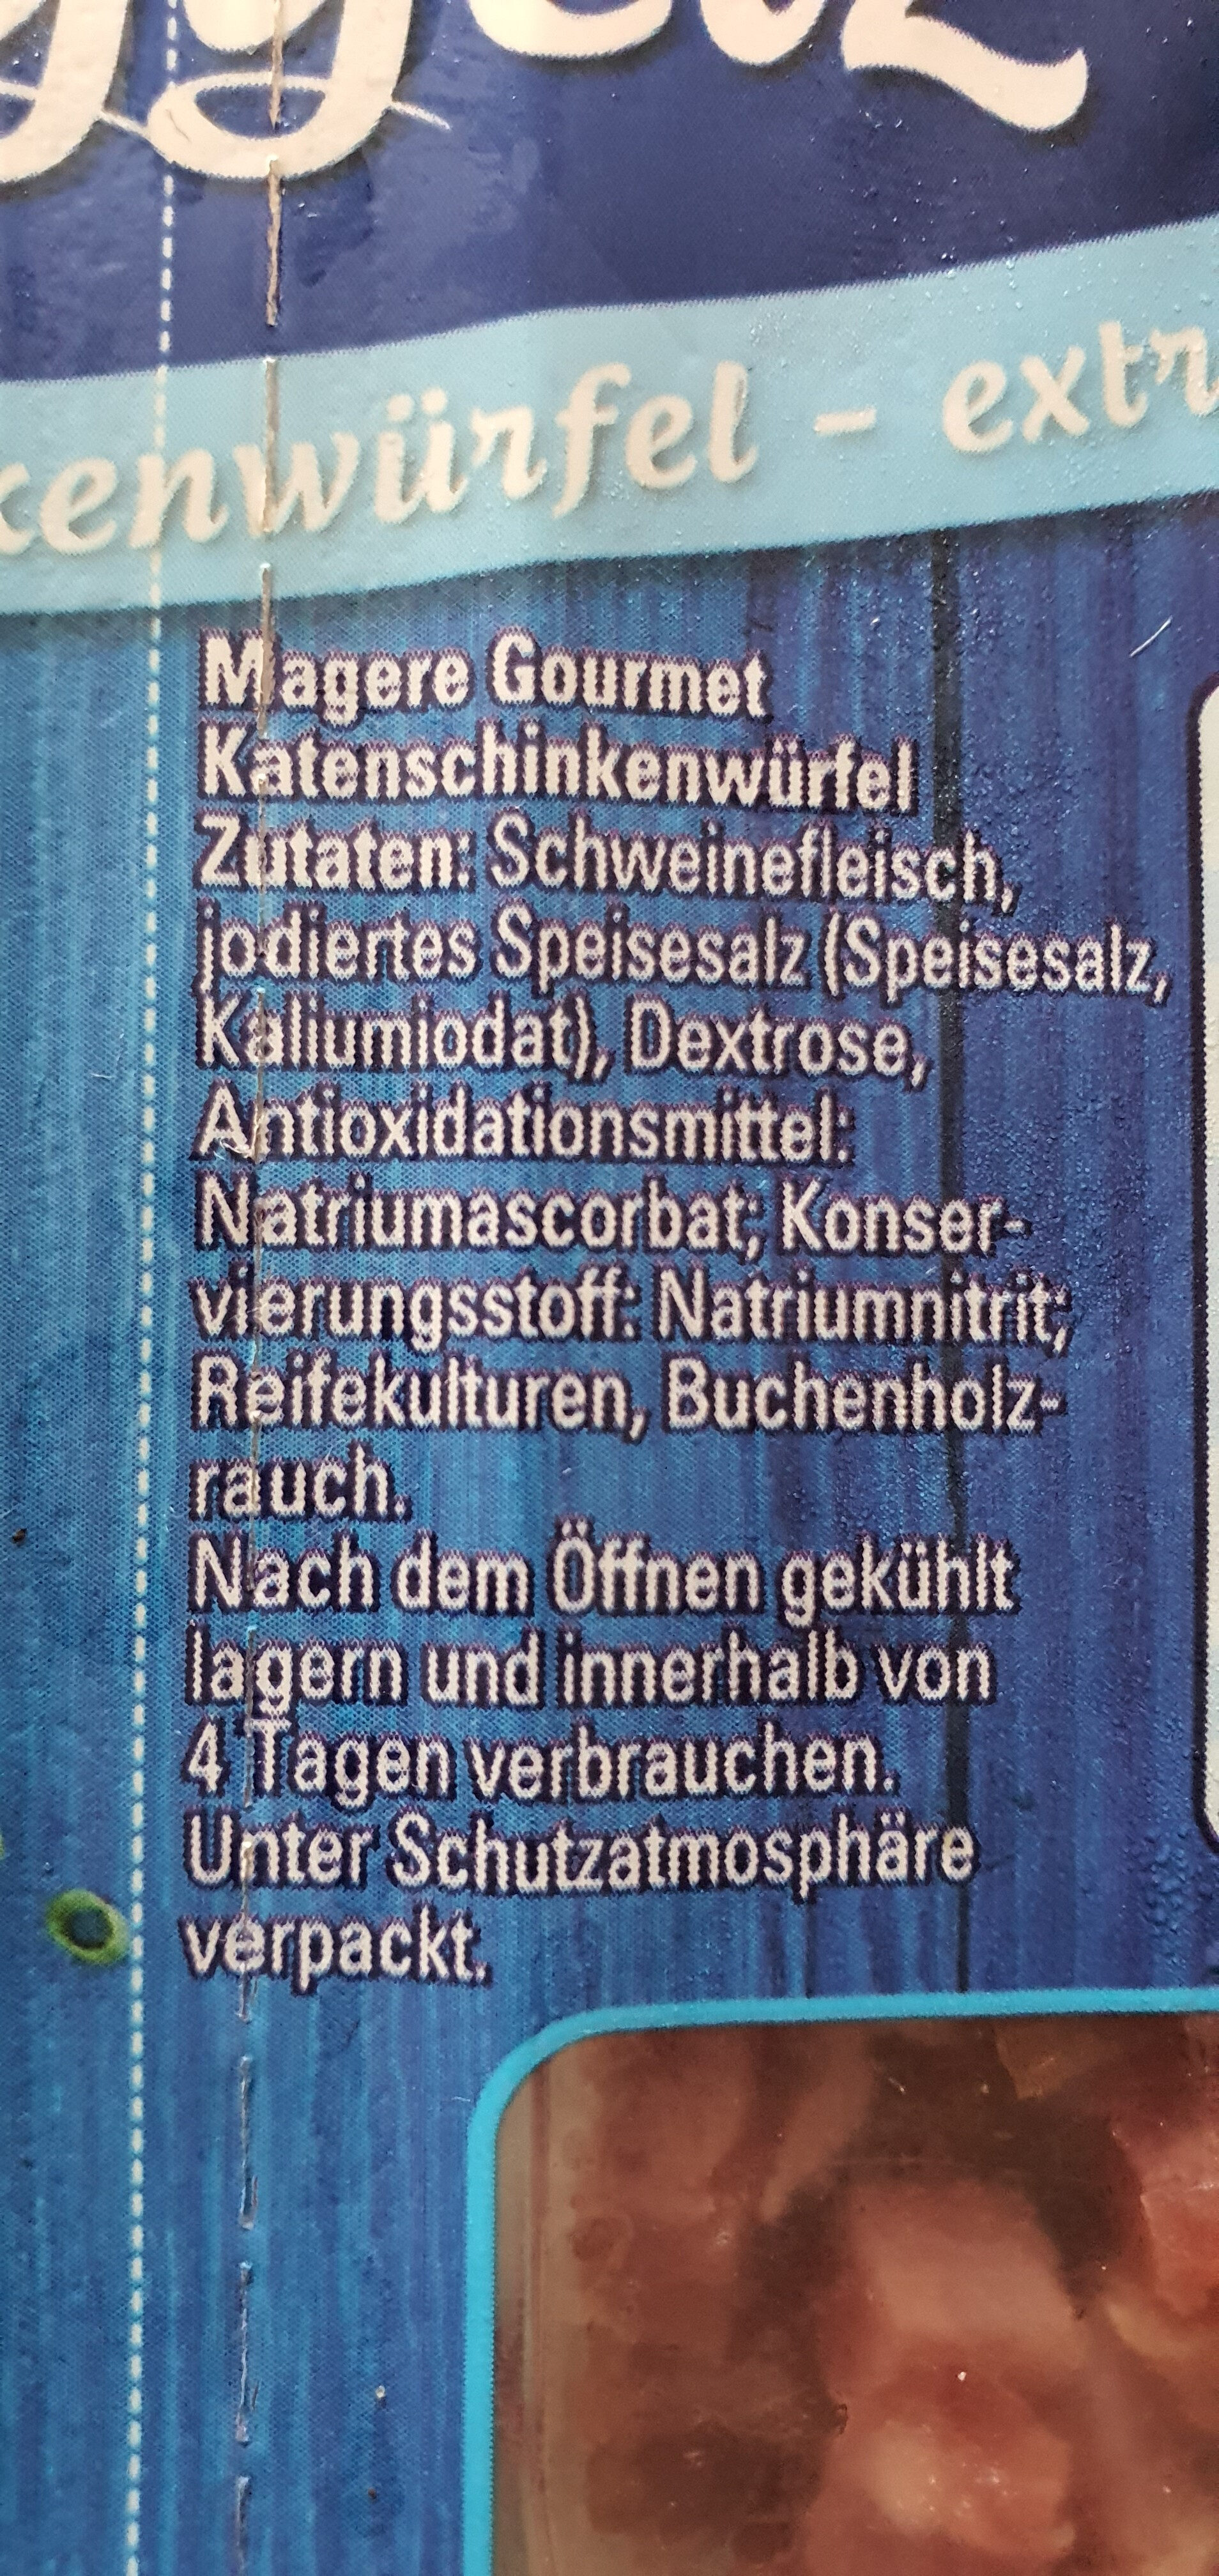 Schinken Nuggetz - Ingredients - en